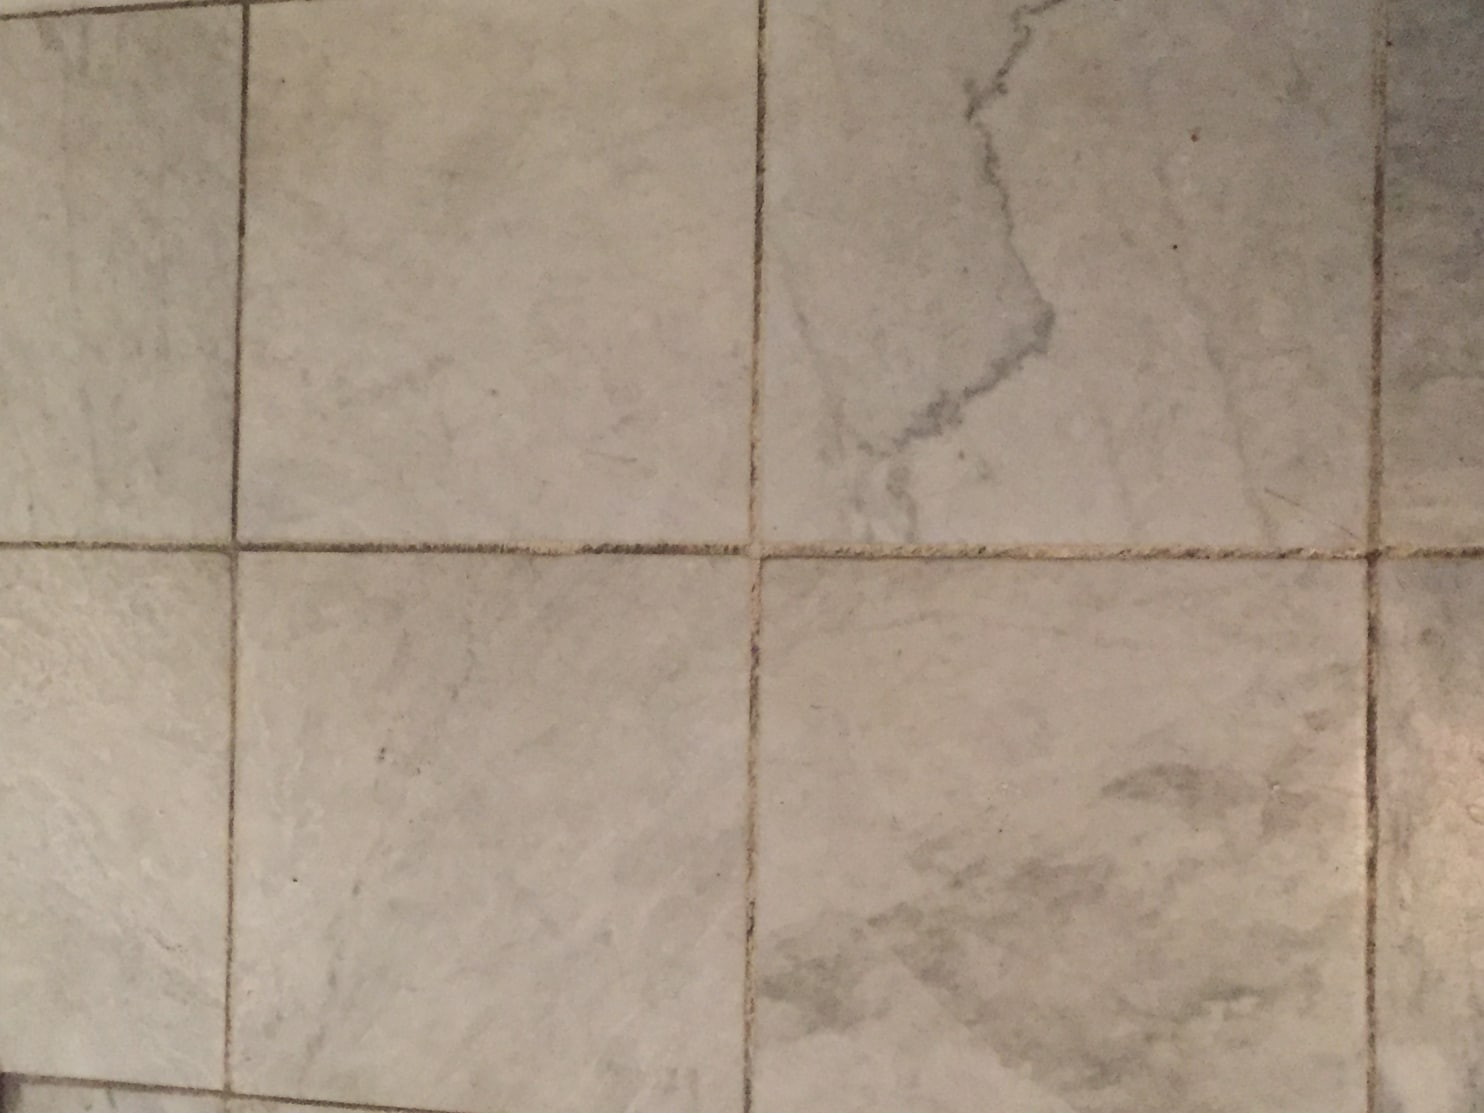 how to clean old dirty grout without